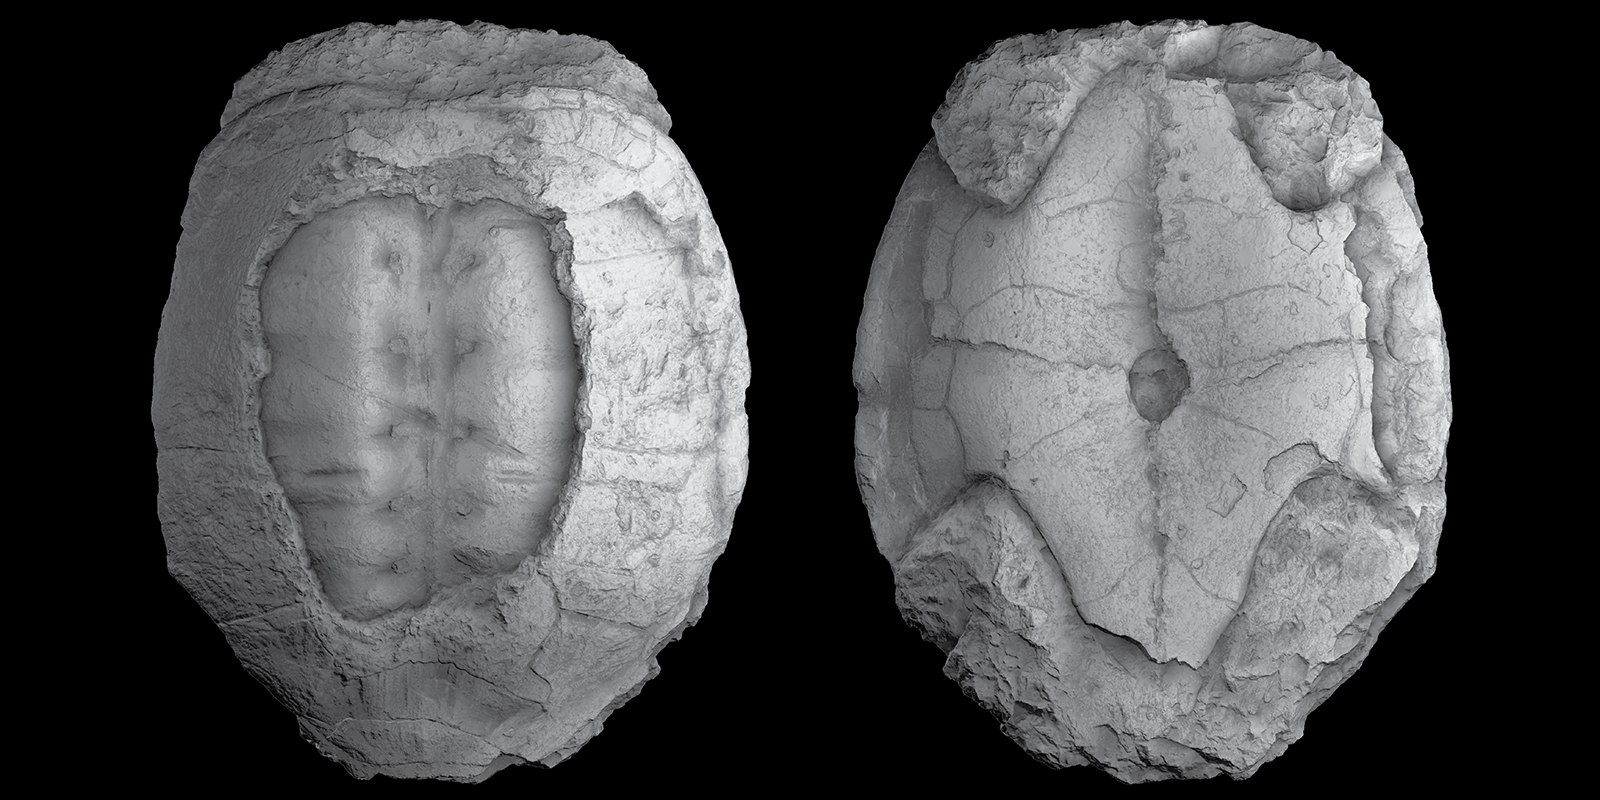 The long lost holotype of the Late Jurassic turtle Plesiochelys etalloni